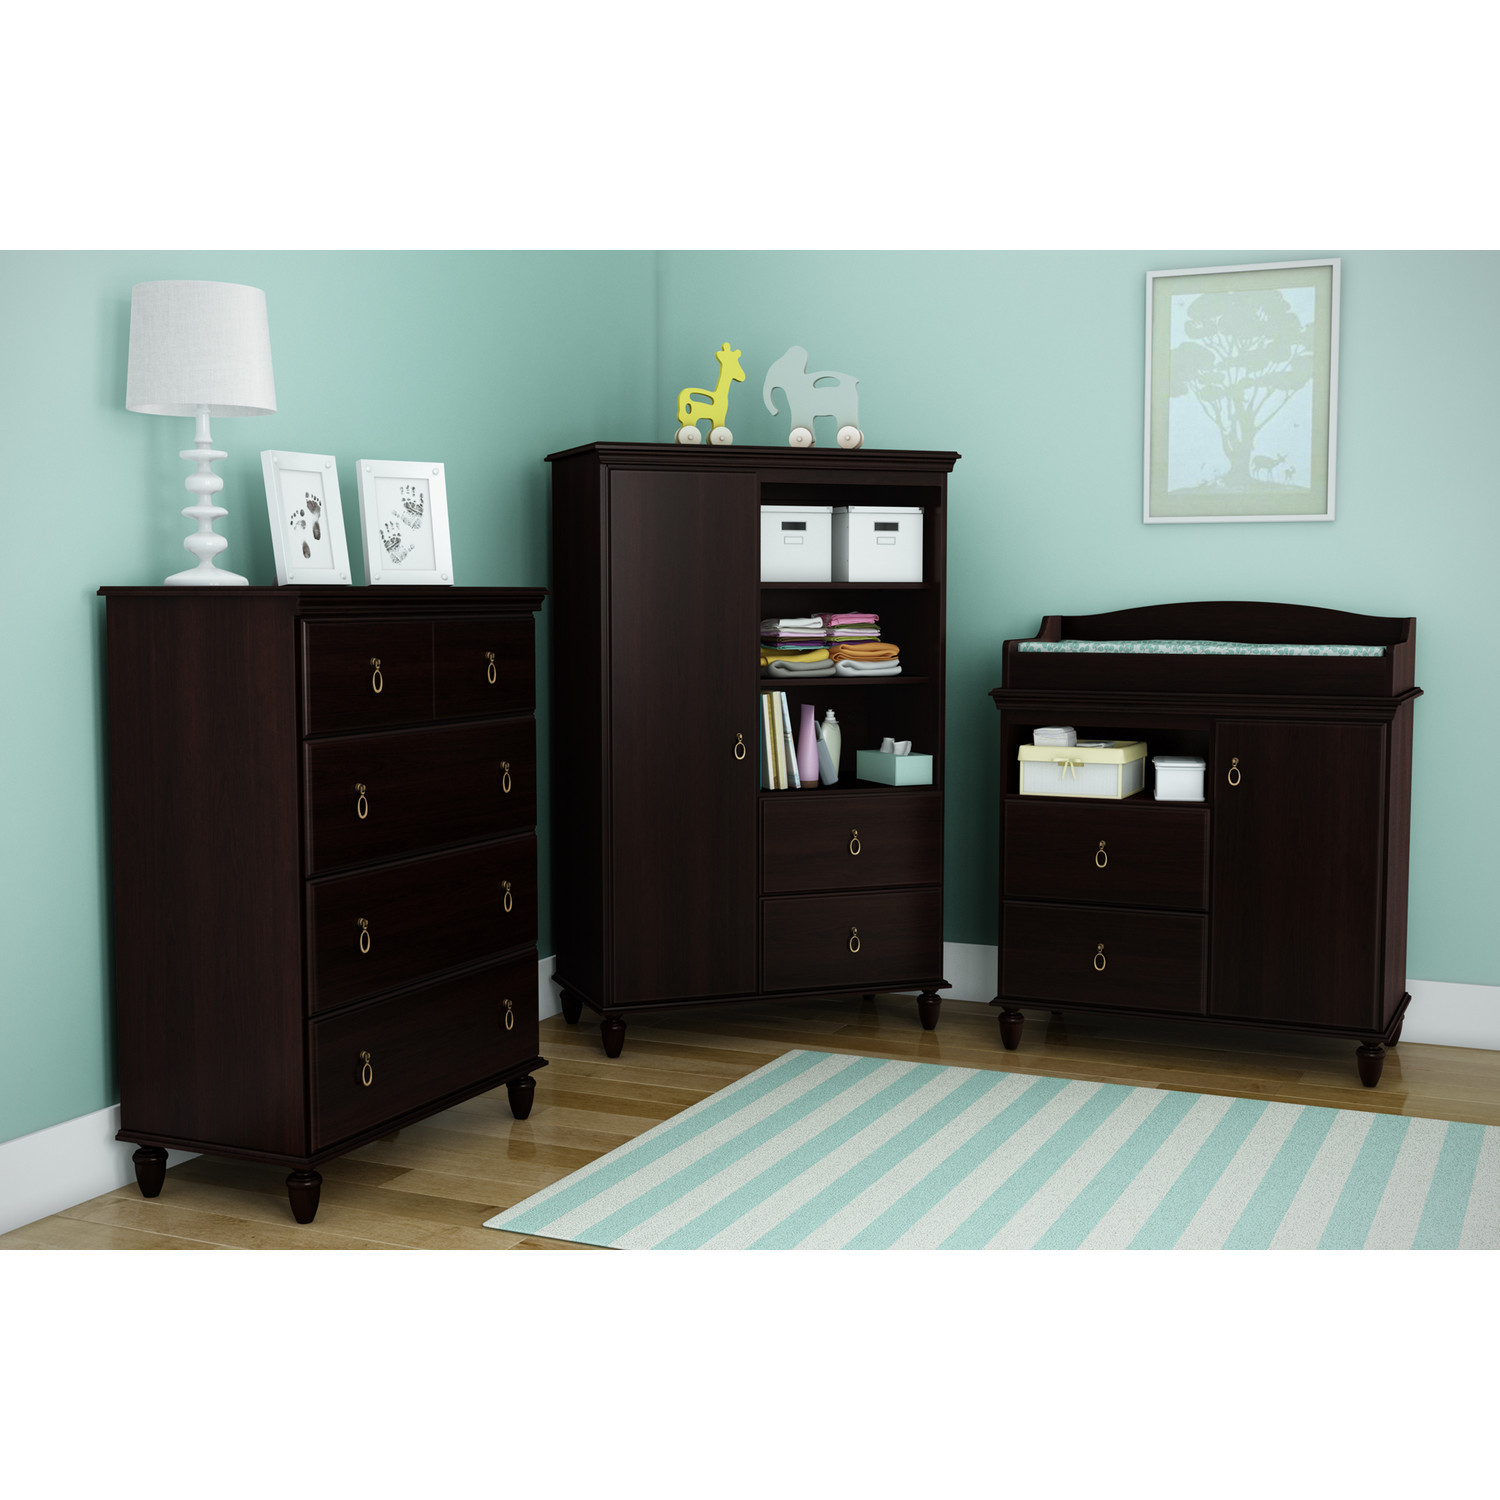 Kids Armoire Wardrobe Bedroom Storage Cabinets Wood ...